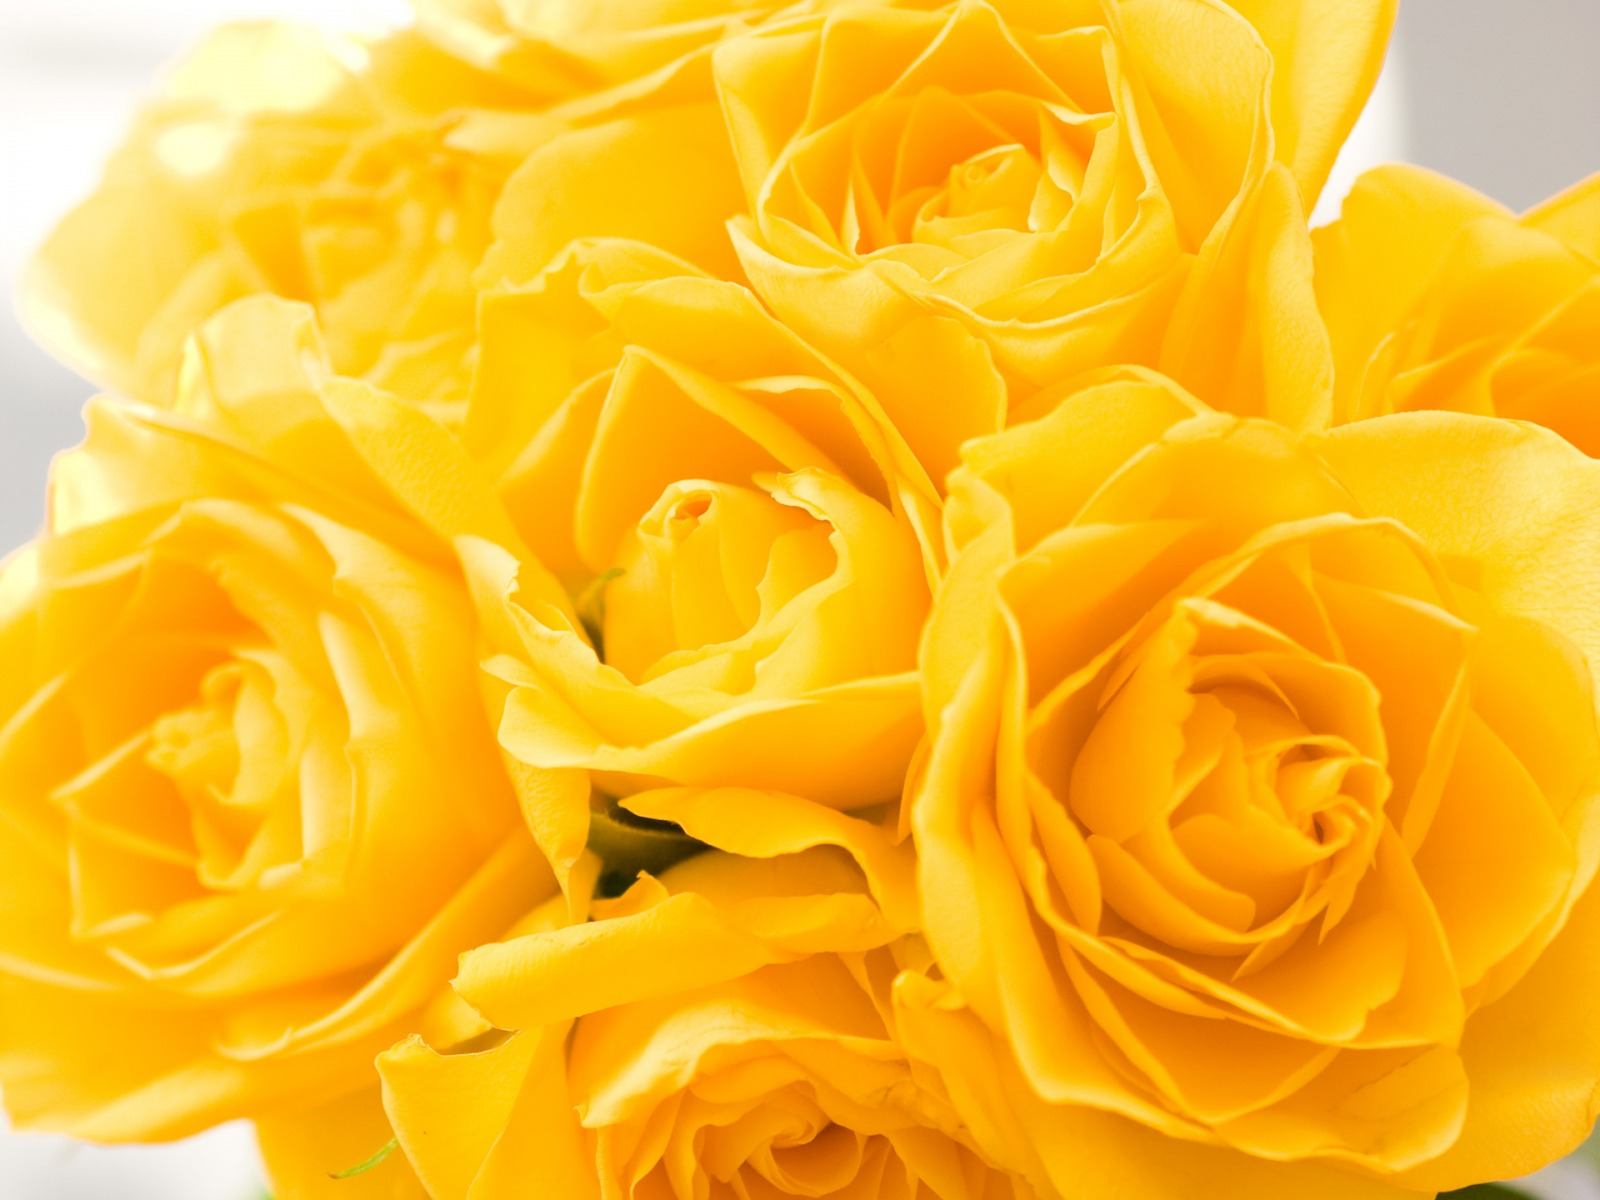 Yellow roses flower wallpaper hd wallpaper size 1024 x 768 yellow roses flower wallpaper mightylinksfo